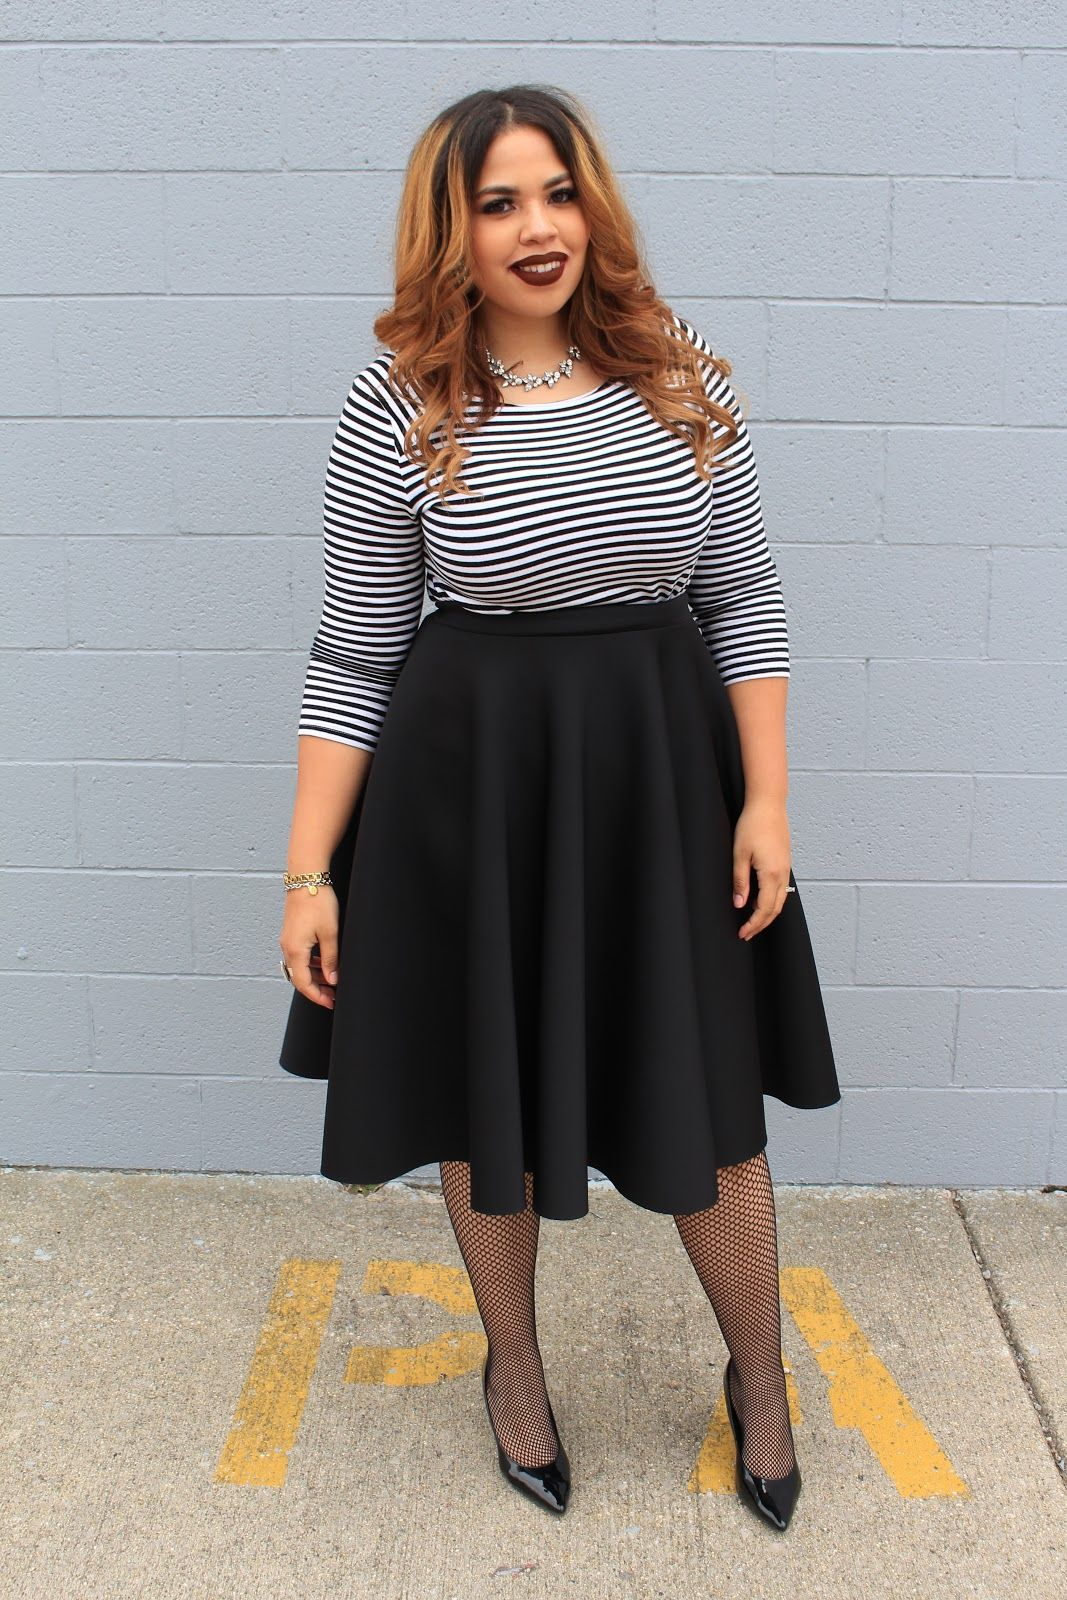 071cf162a3d Plus Size Fashion Blogger Telly Loves Fashion wearing Fashion To Figures  Circle Midi Skirt (Available in black